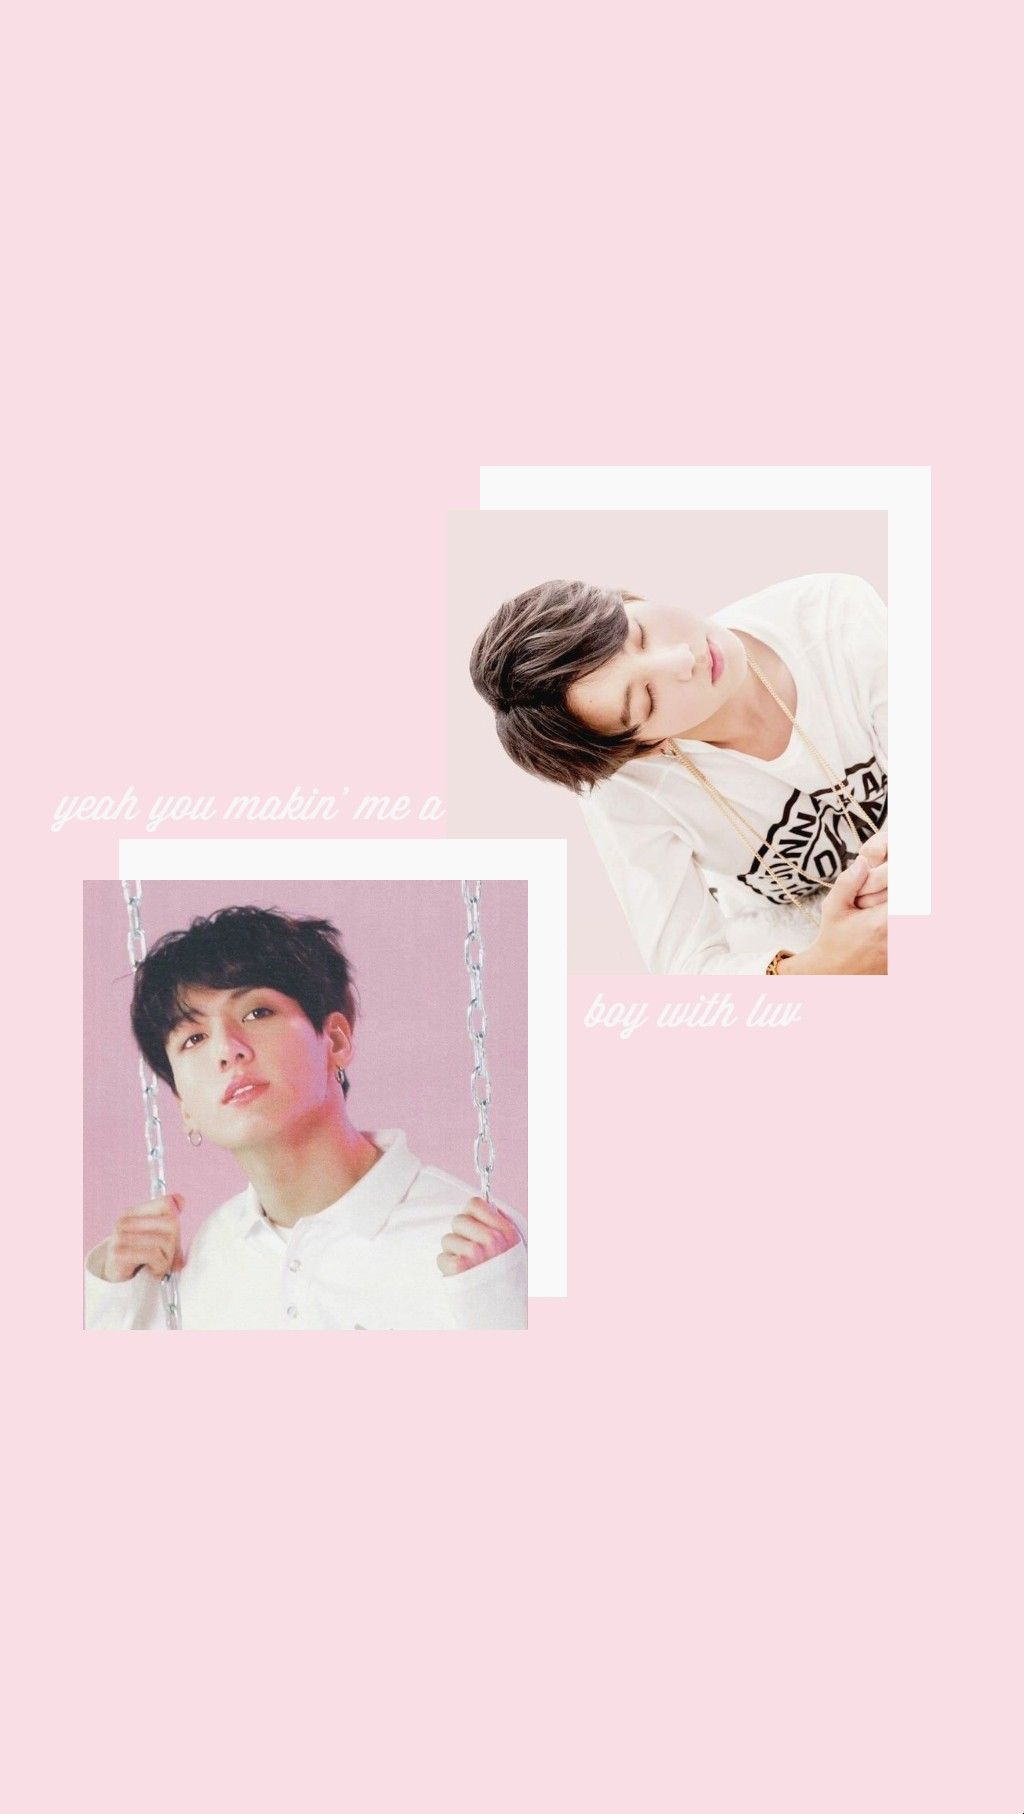 Jk Wallpaper Boy With Luv Pink Wallpaper Iphone Iphone Background Pink Bts Aesthetic Wallpaper For Phone Bts jk iphone wallpaper